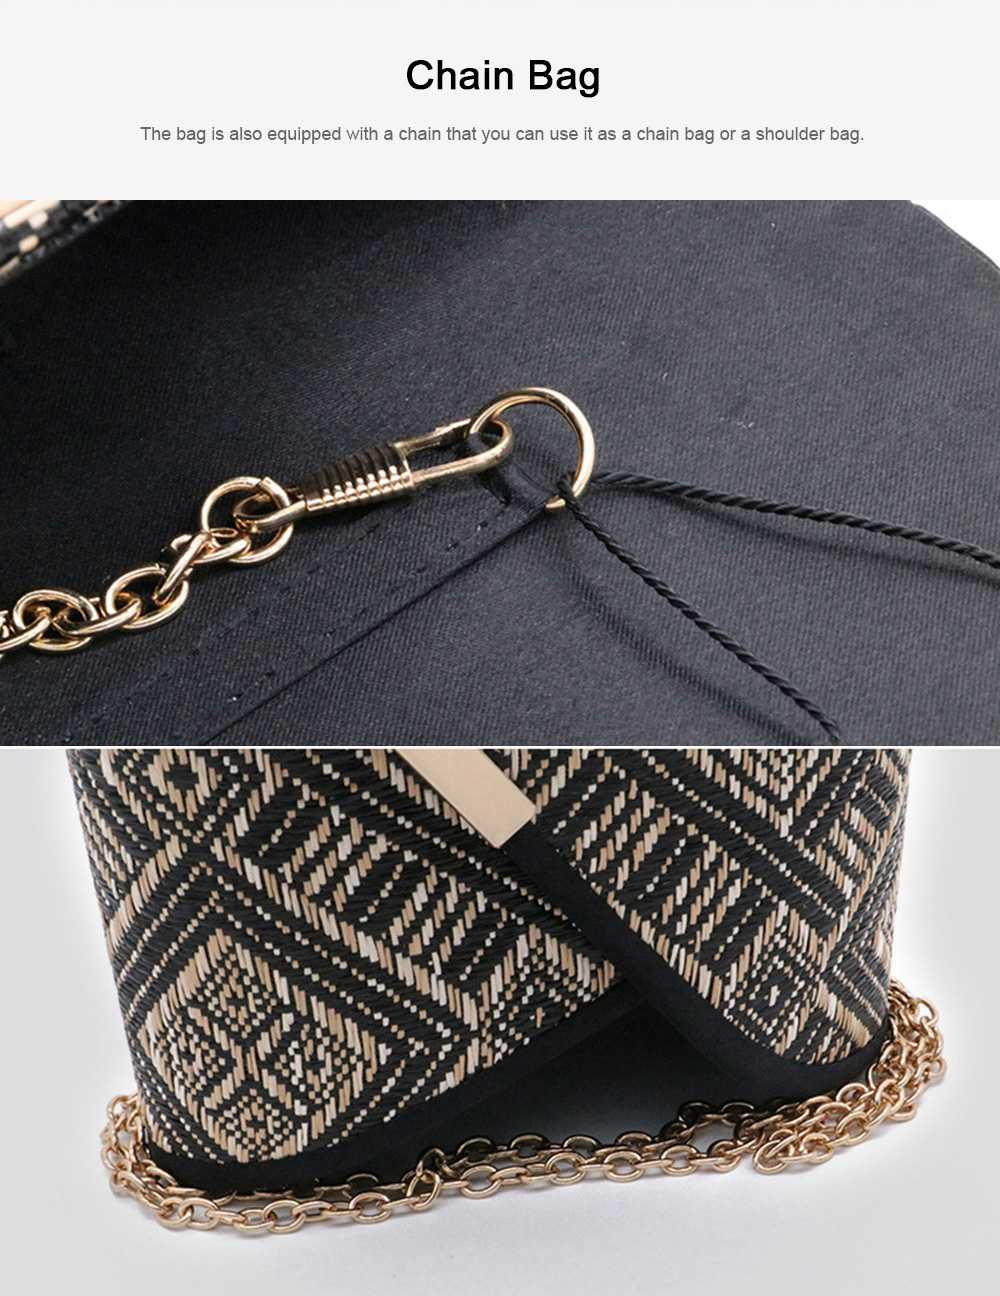 Weave Evening Purse for Woman, Fashionable Hand Clutch Bag, Diamond-shape Handbag for Party, Banquet Chain Bag Shoulder Bag 4